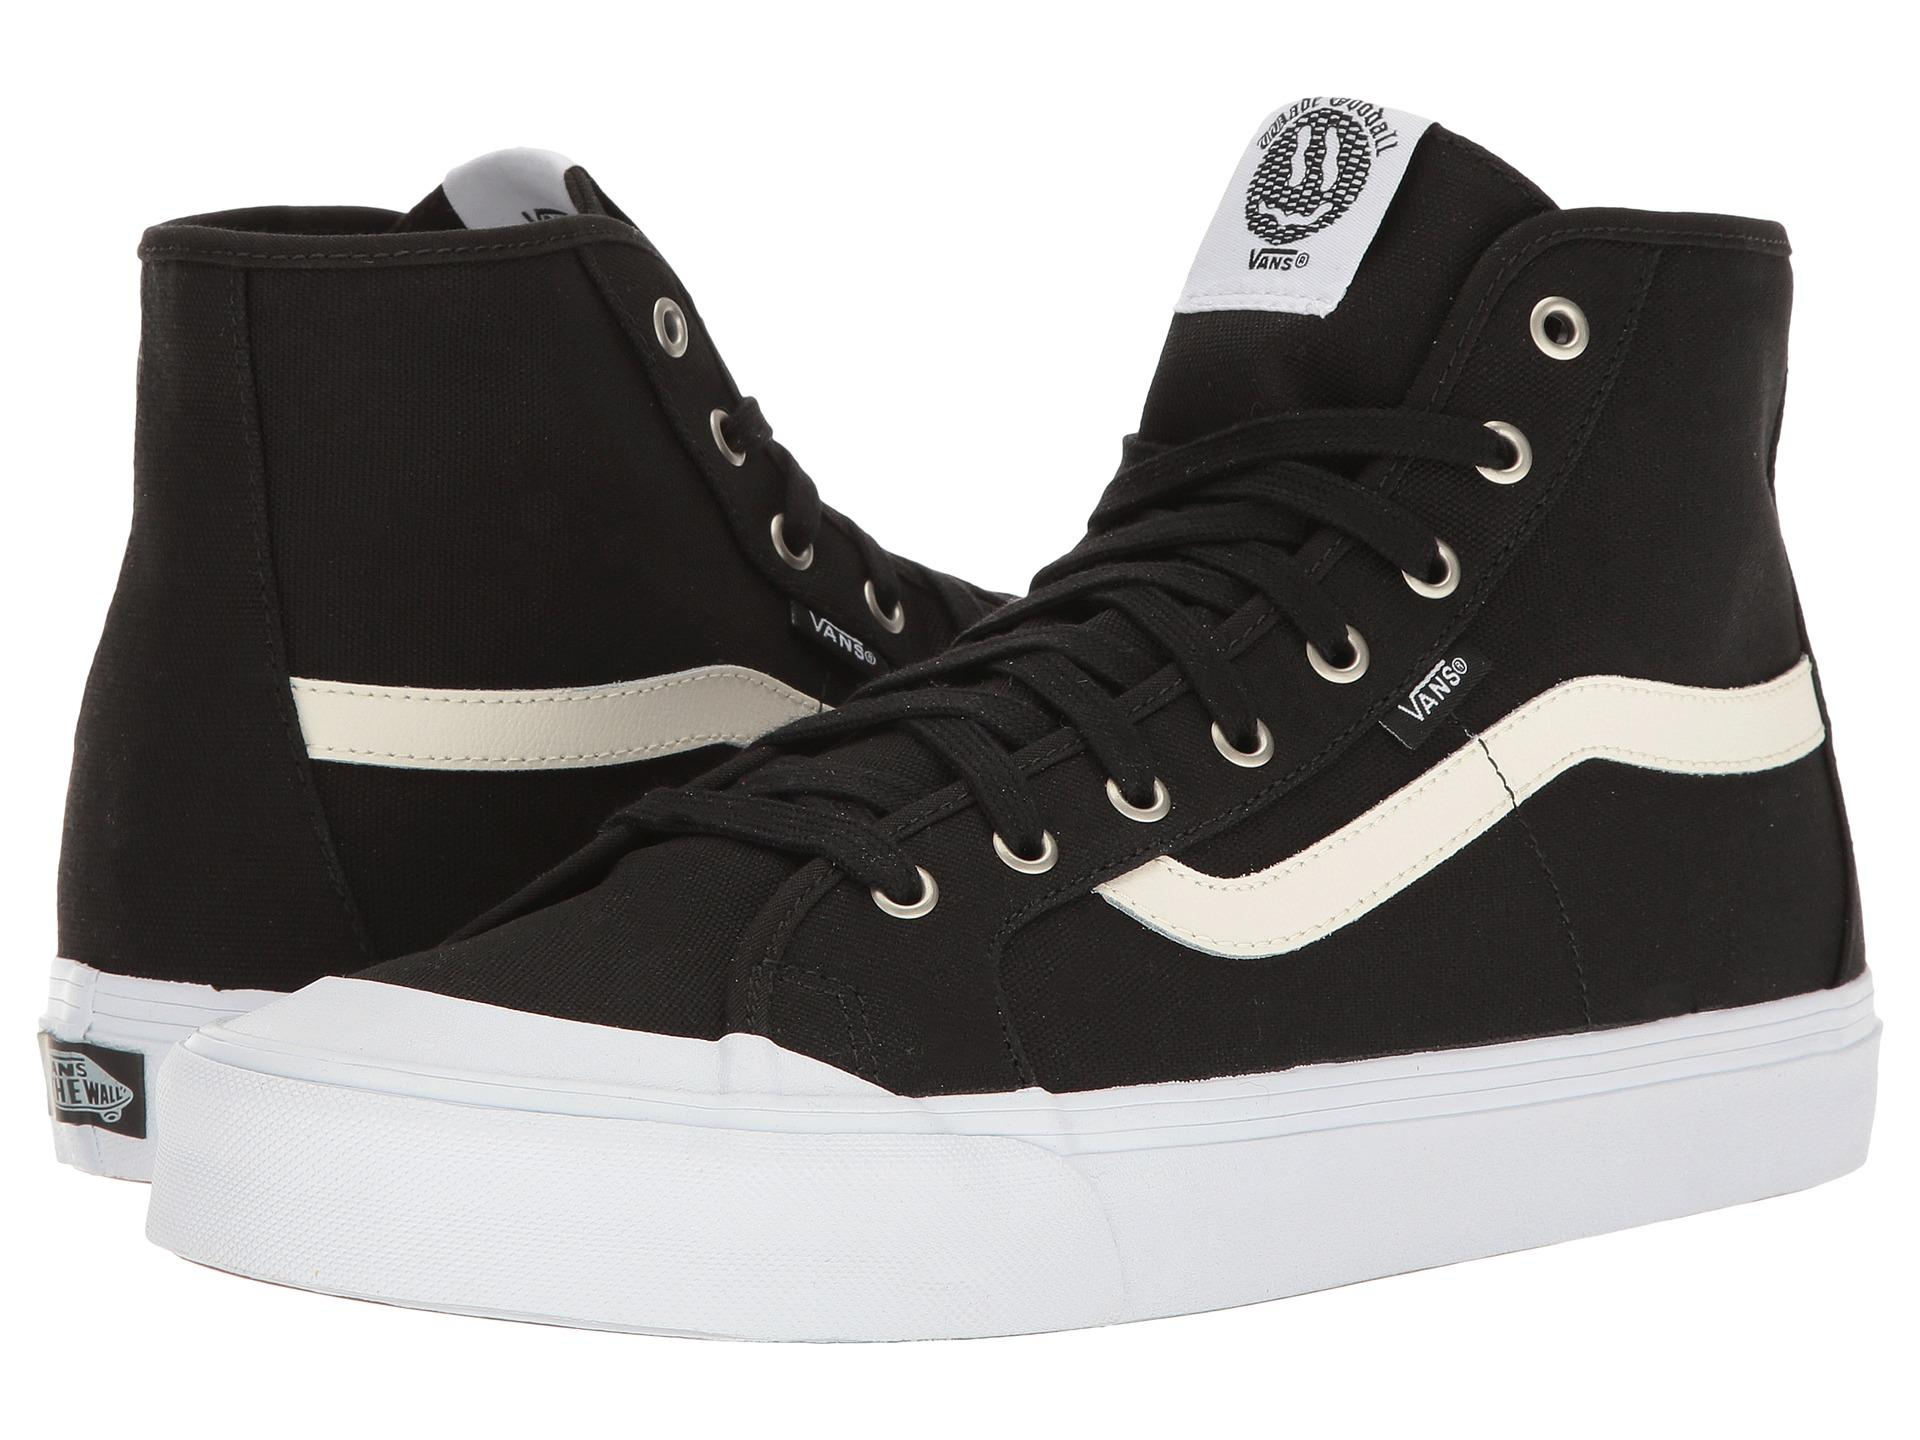 c4ddc3baaf3d7e Lyst - Vans Black Ball Hi Sf in Black for Men